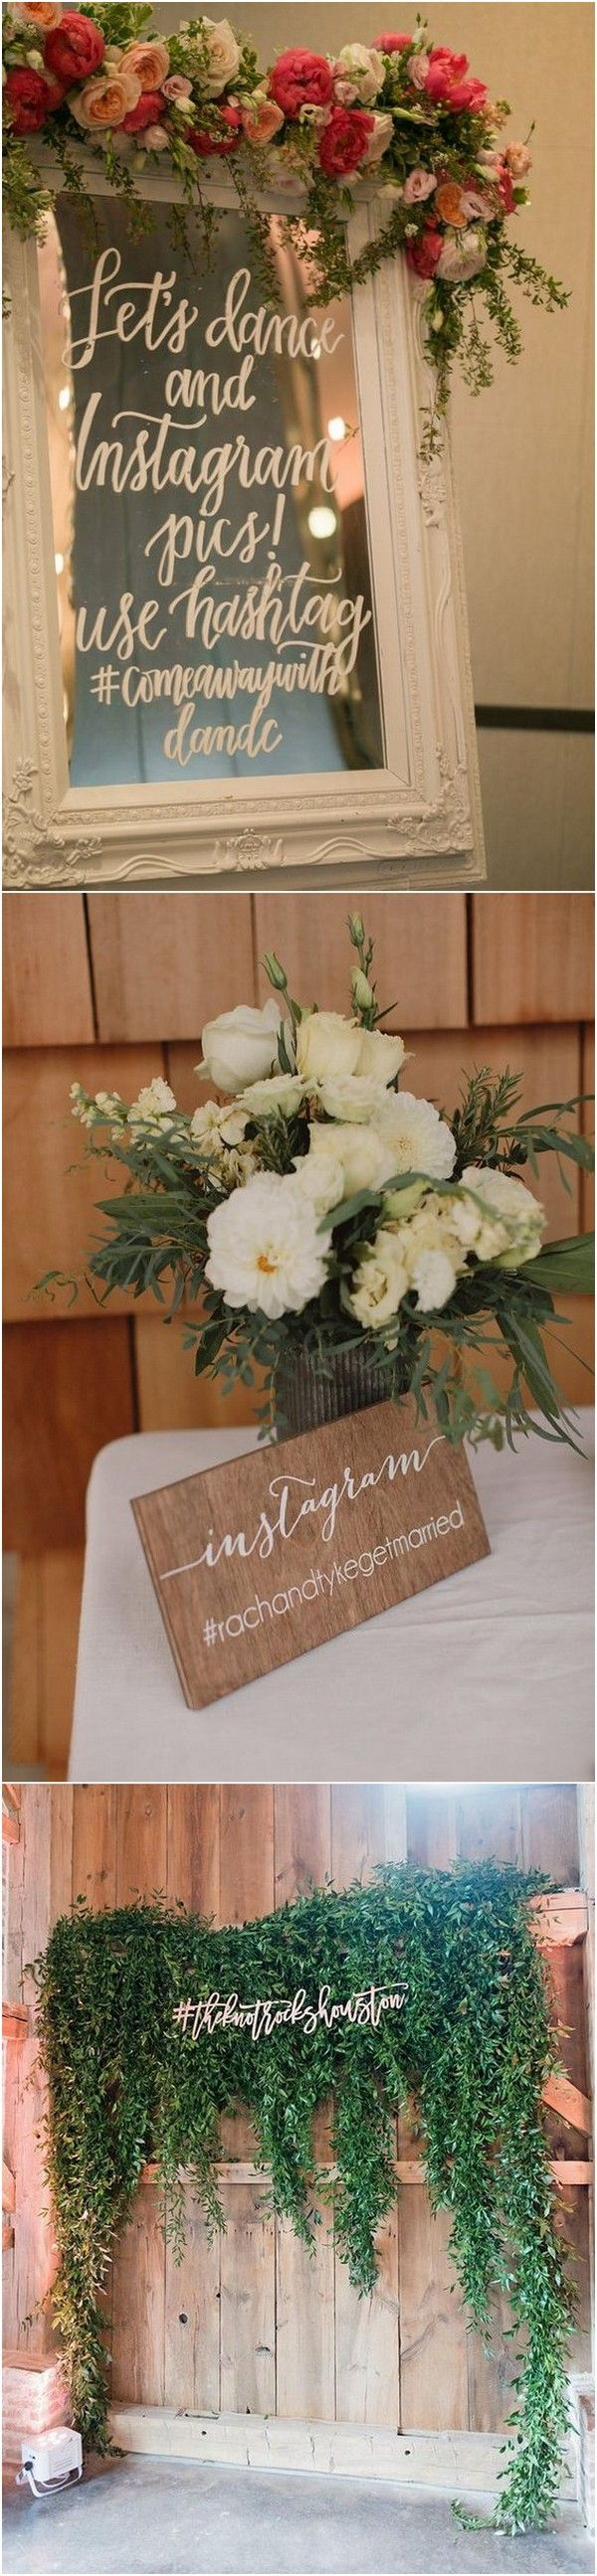 Wedding reception wedding decorations 2018   Trending Wedding Hashtag Sign Ideas for Your Big Day  Page  of